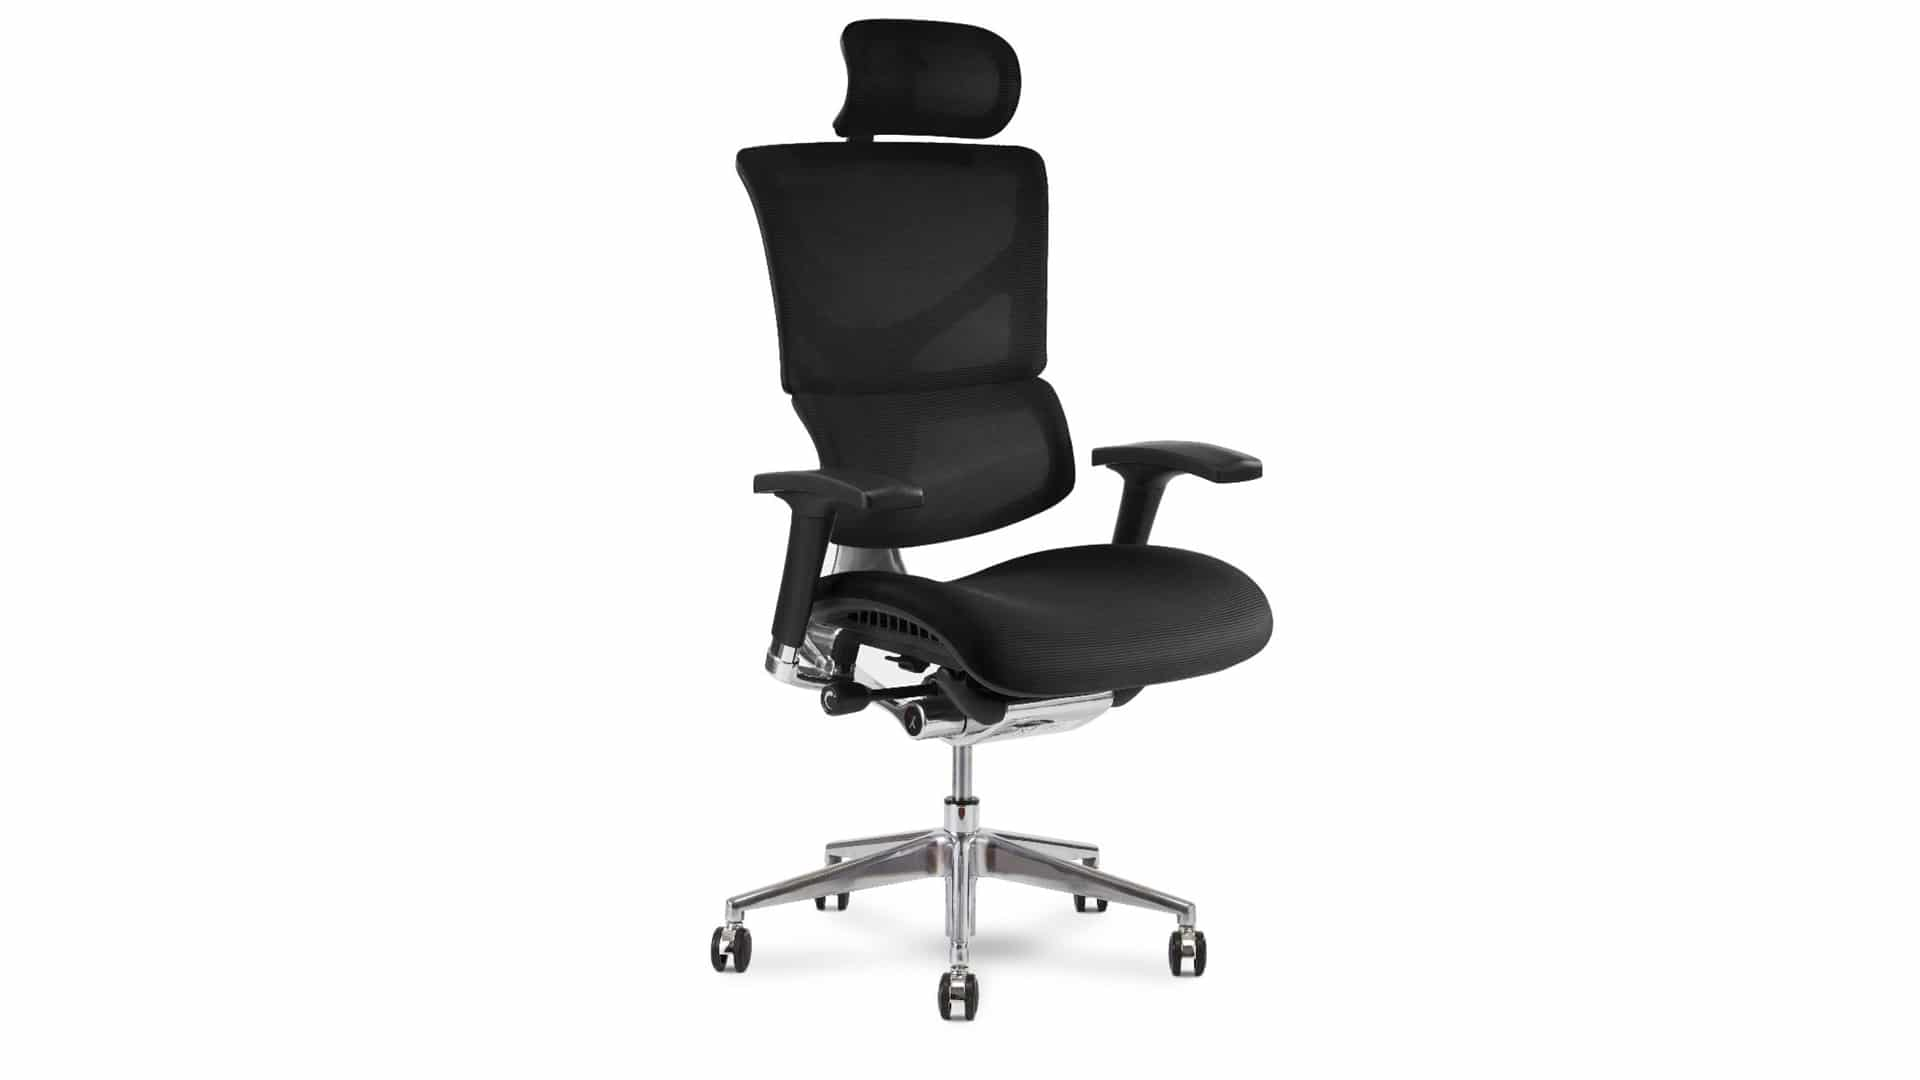 X3 Management Office Desk Chair